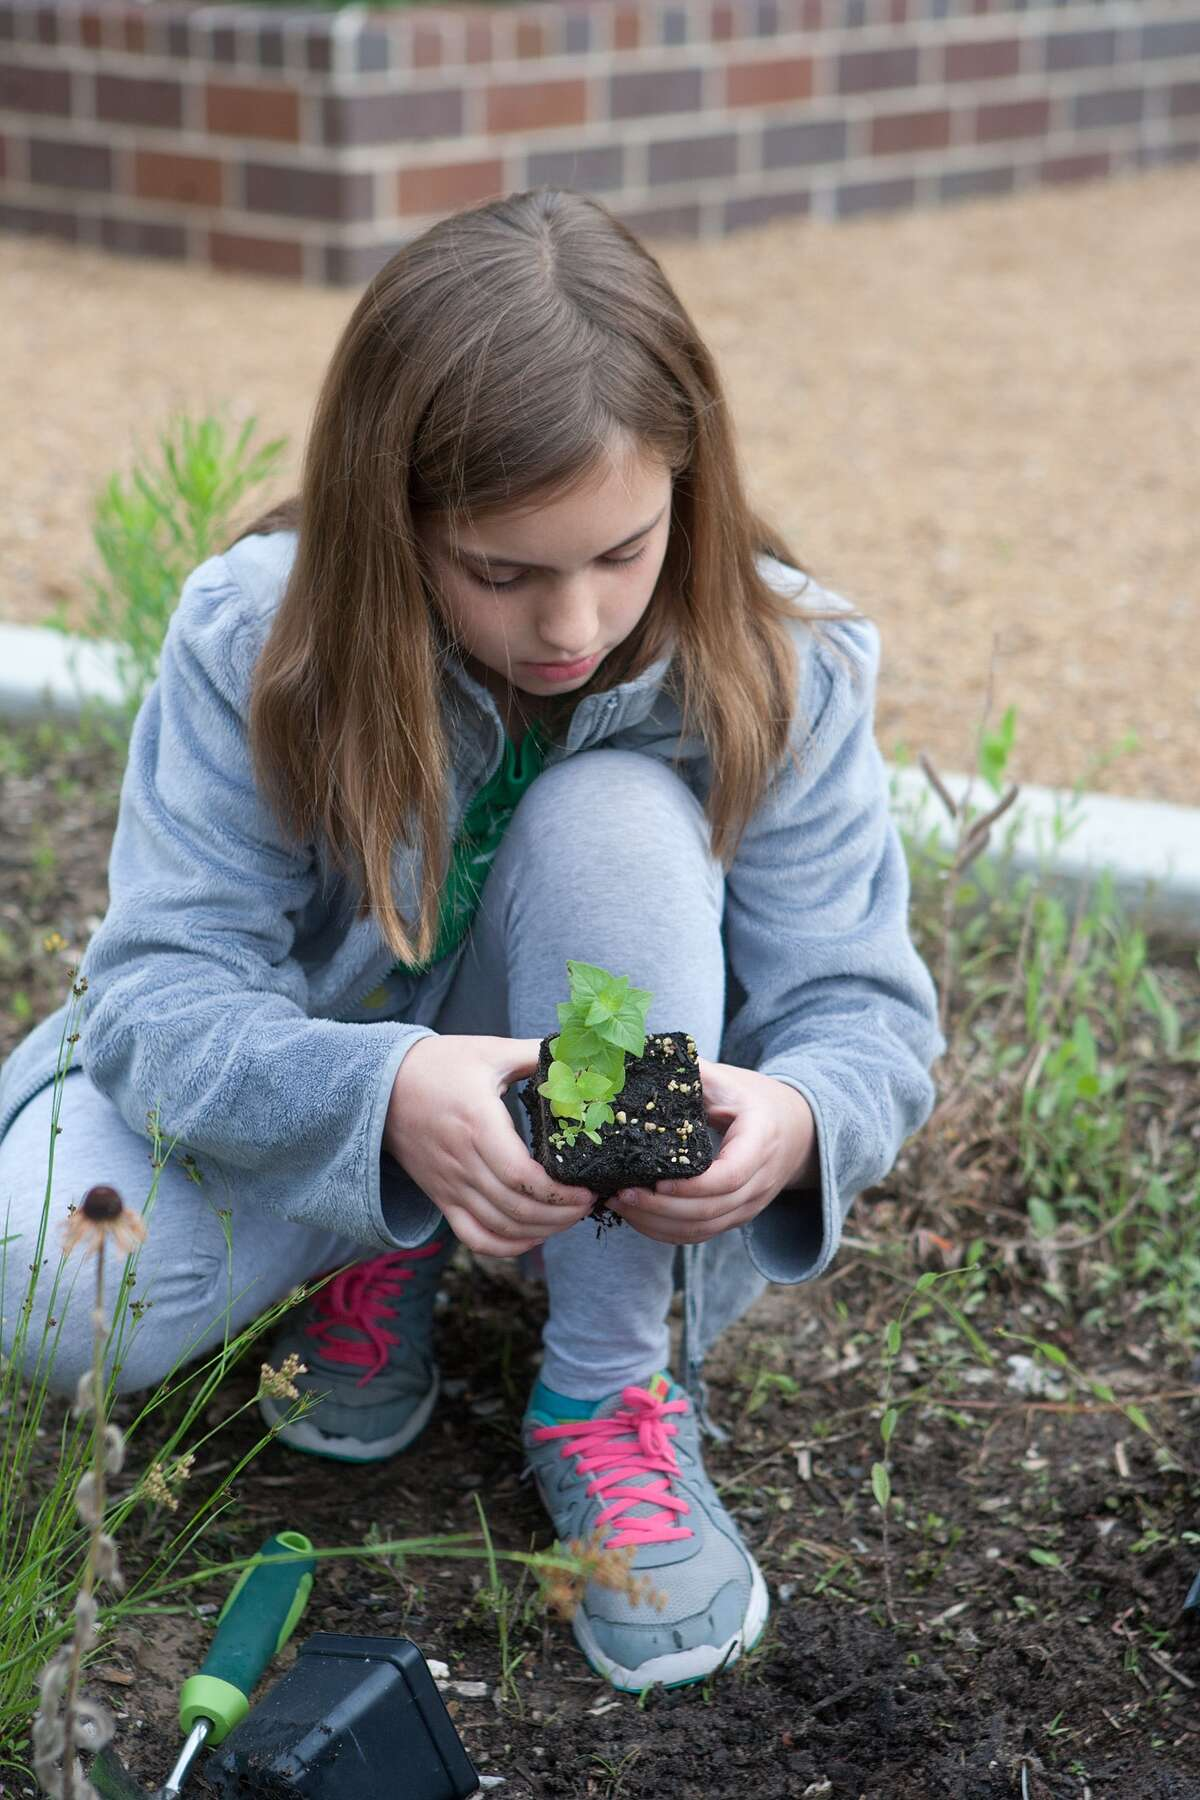 Fourth-grader Cassie Buegler, 10, examines a bee balm plant before putting it into the pocket prairie at Frostwood Elementary School. Fourth-grader Cassie Buegler, 10, examines a bee balm plant before putting it into the pocket prairie at Frostwood Elementary School.